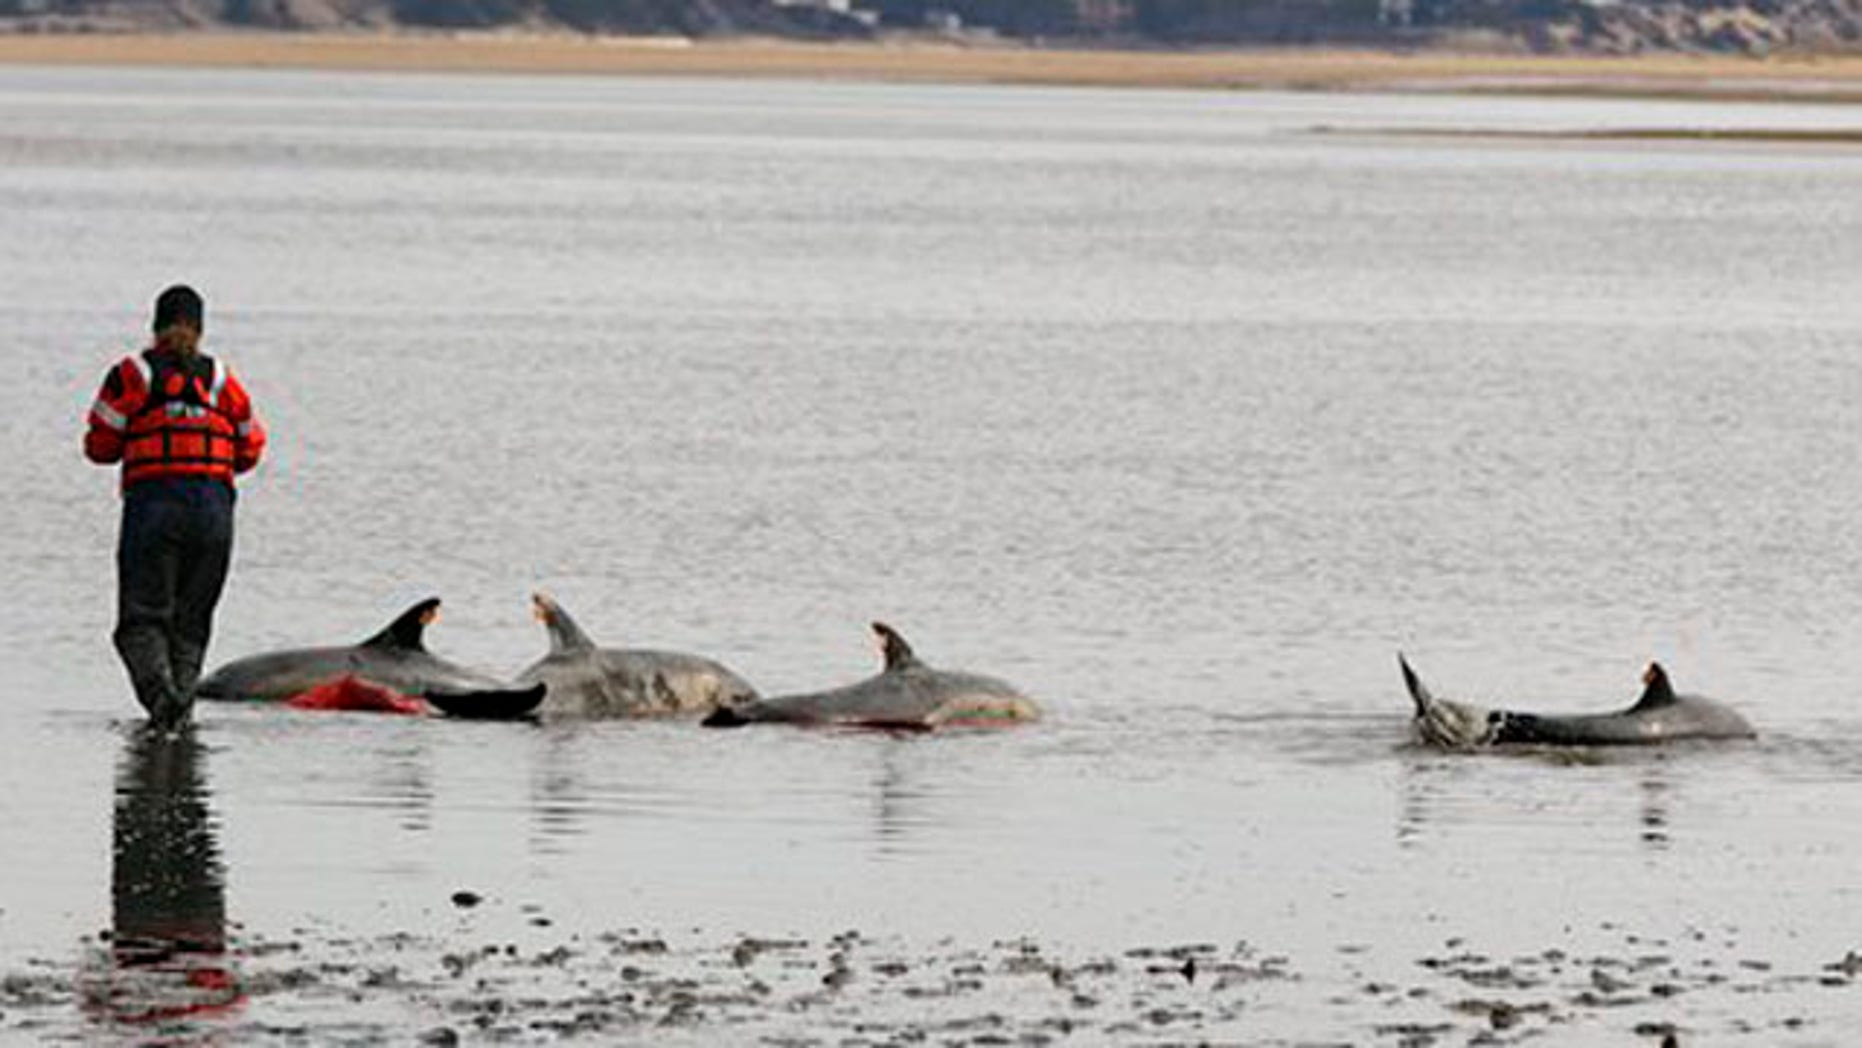 Feb. 14, 2012: Katie Moore, an International Fund for Animal Welfare rescue team member, approaches a portion of a pod of 11 dolphins stranded on a mud flat during low tide in Wellfleet, Mass.